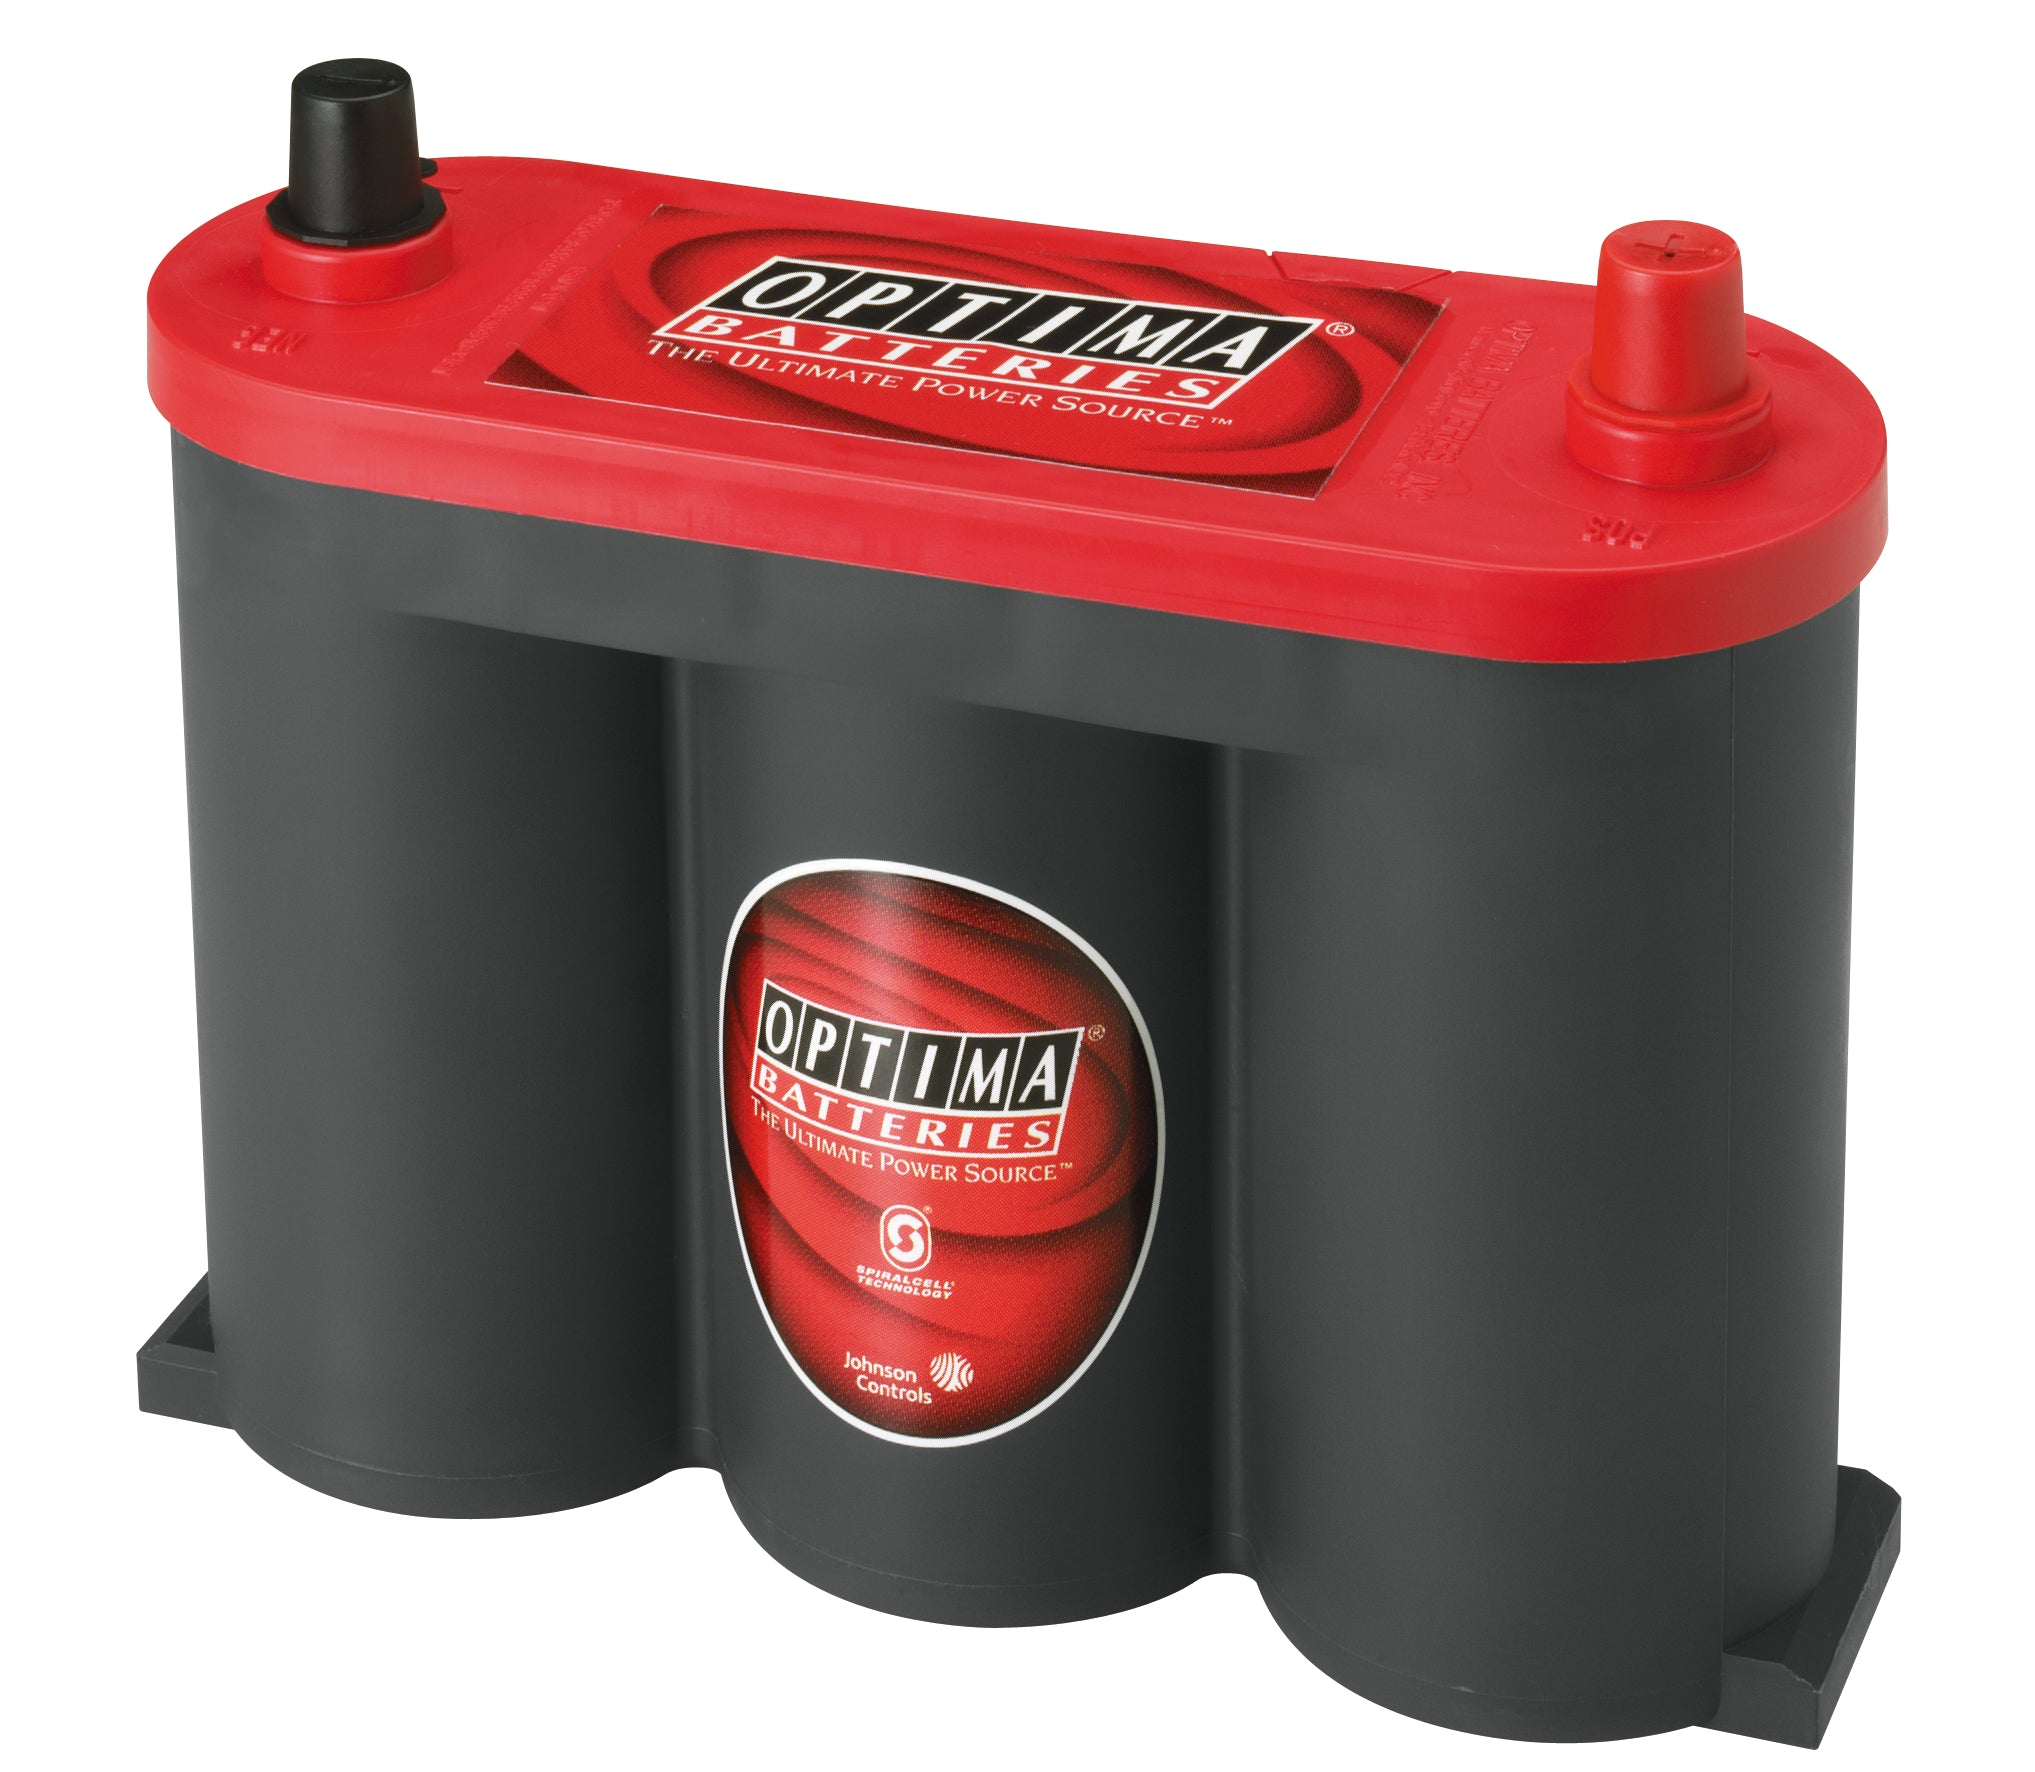 Optima 6v Redtop Starting battery